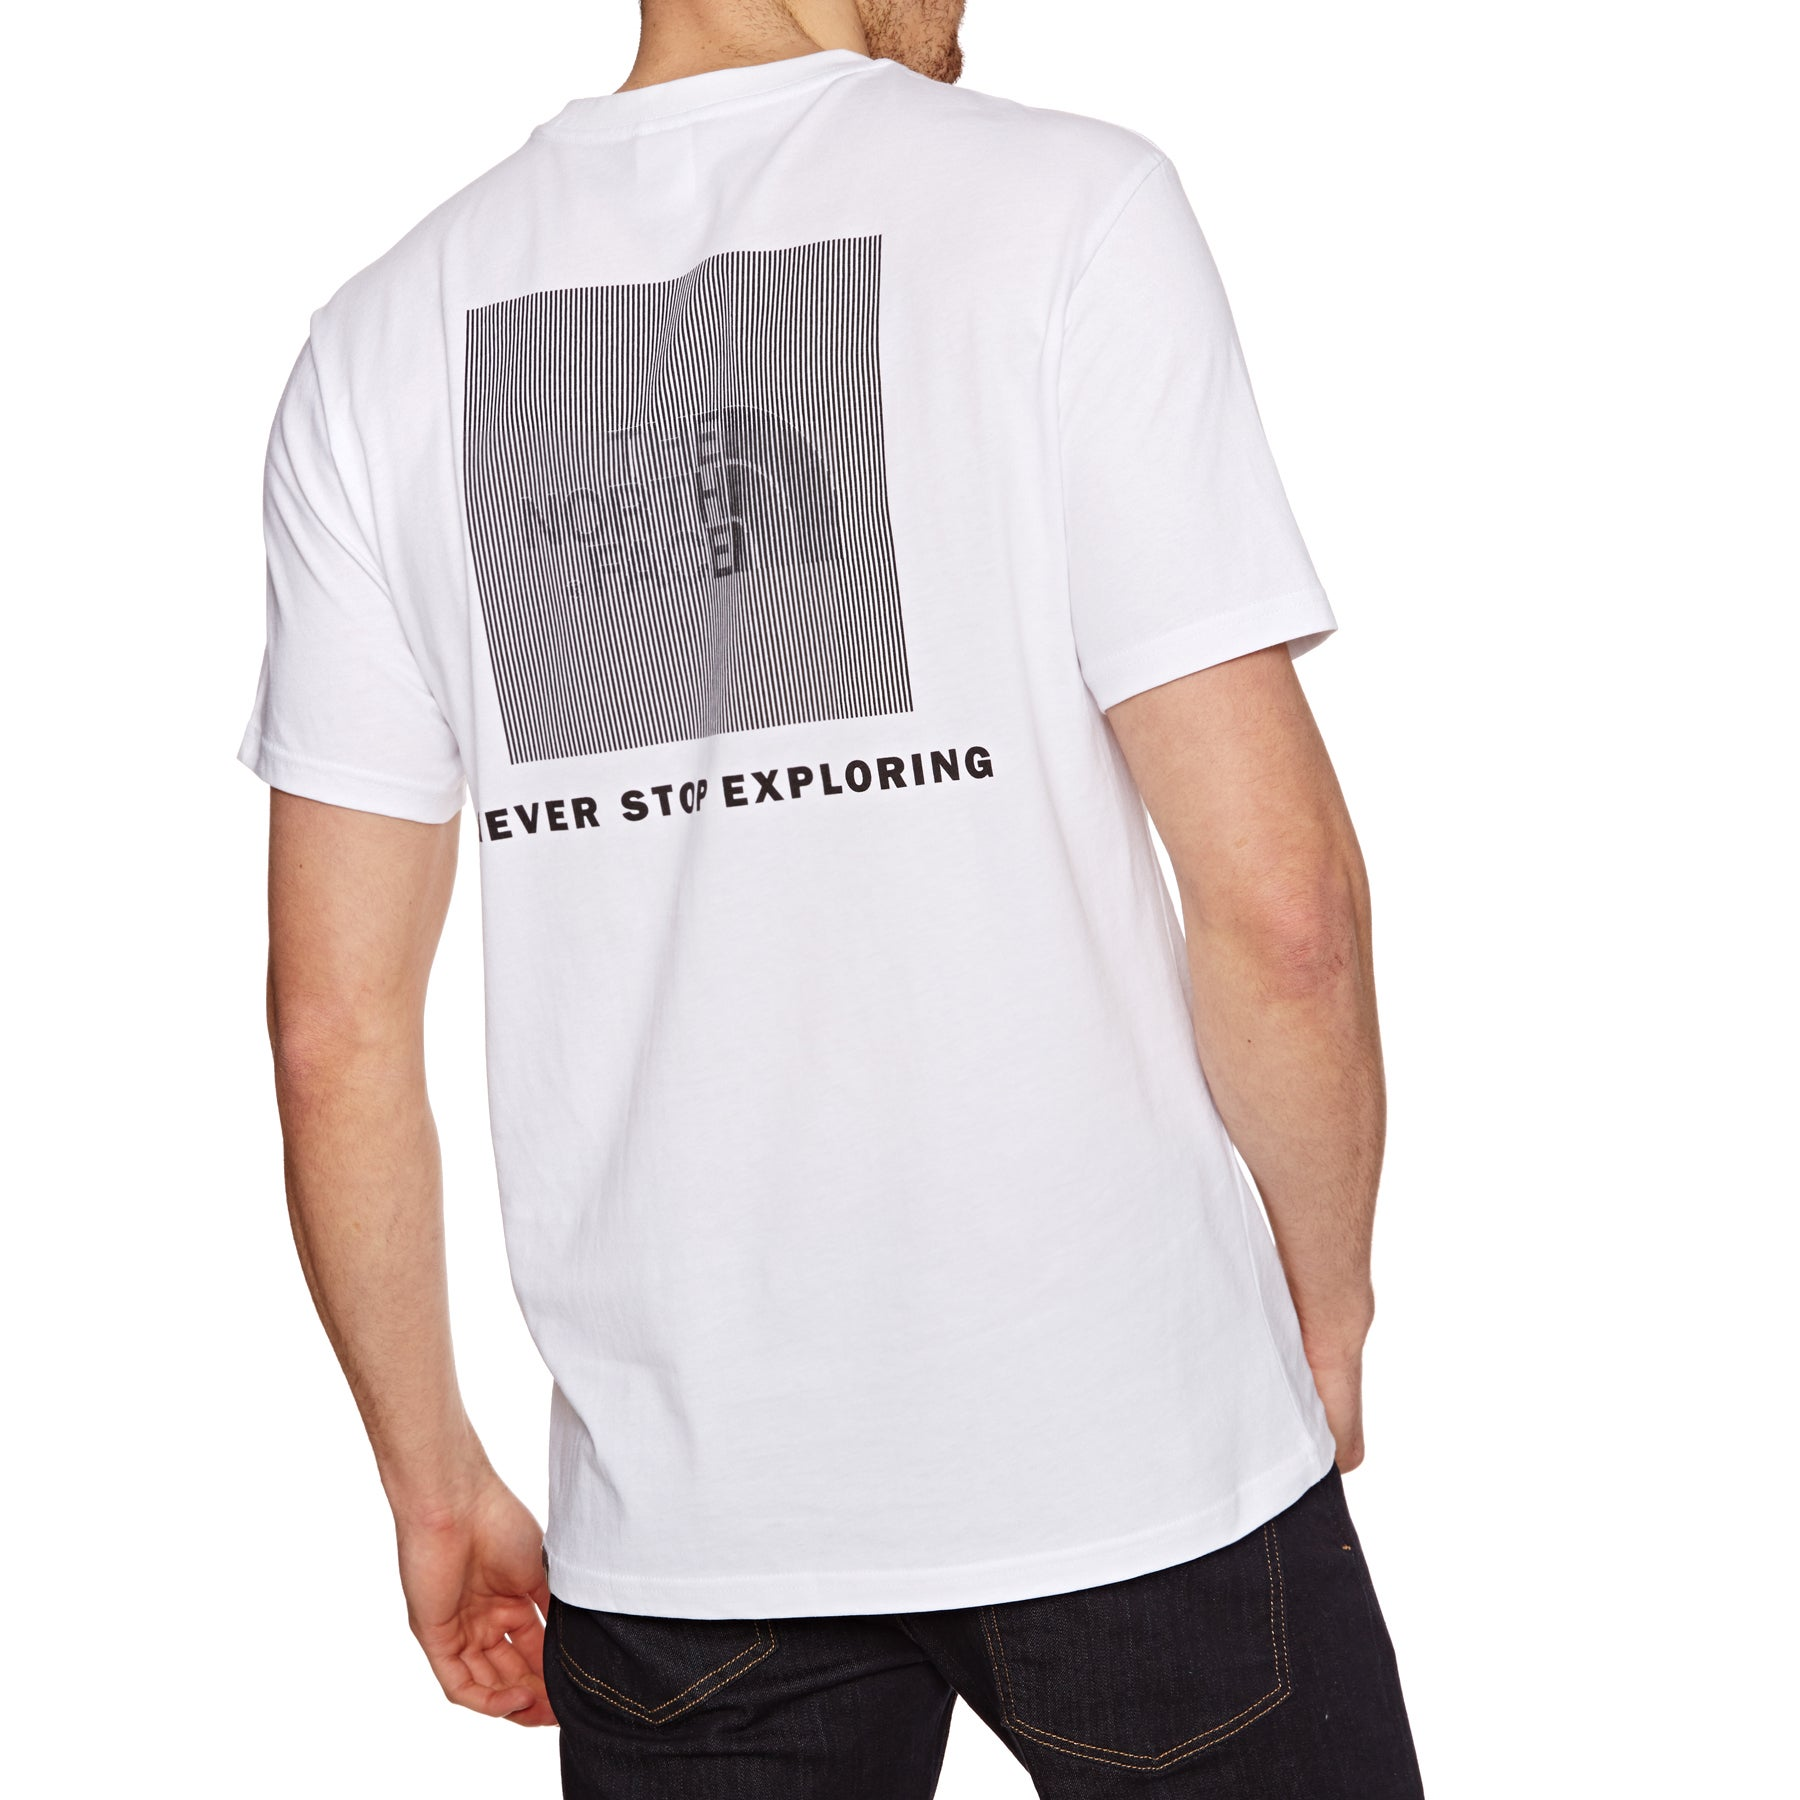 North Face Celebration Short Sleeve T-Shirt - Tnf White